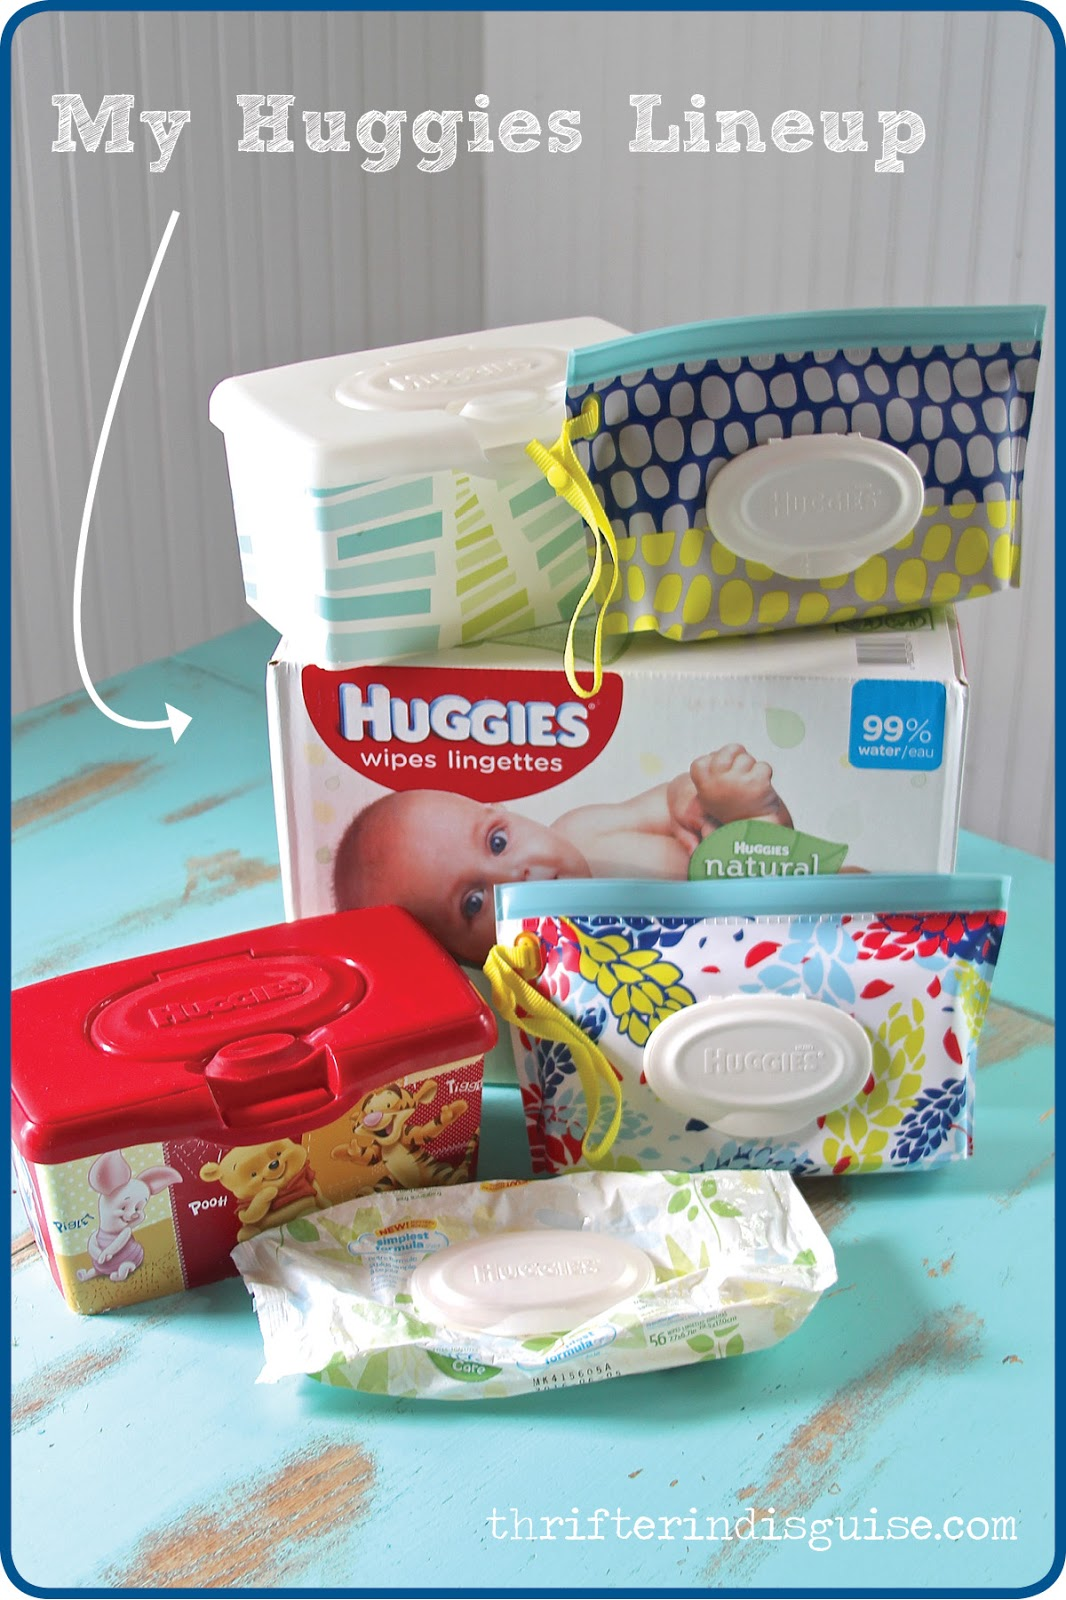 A Thrifter In Disguise Huggies Triple Clean Wipes Have